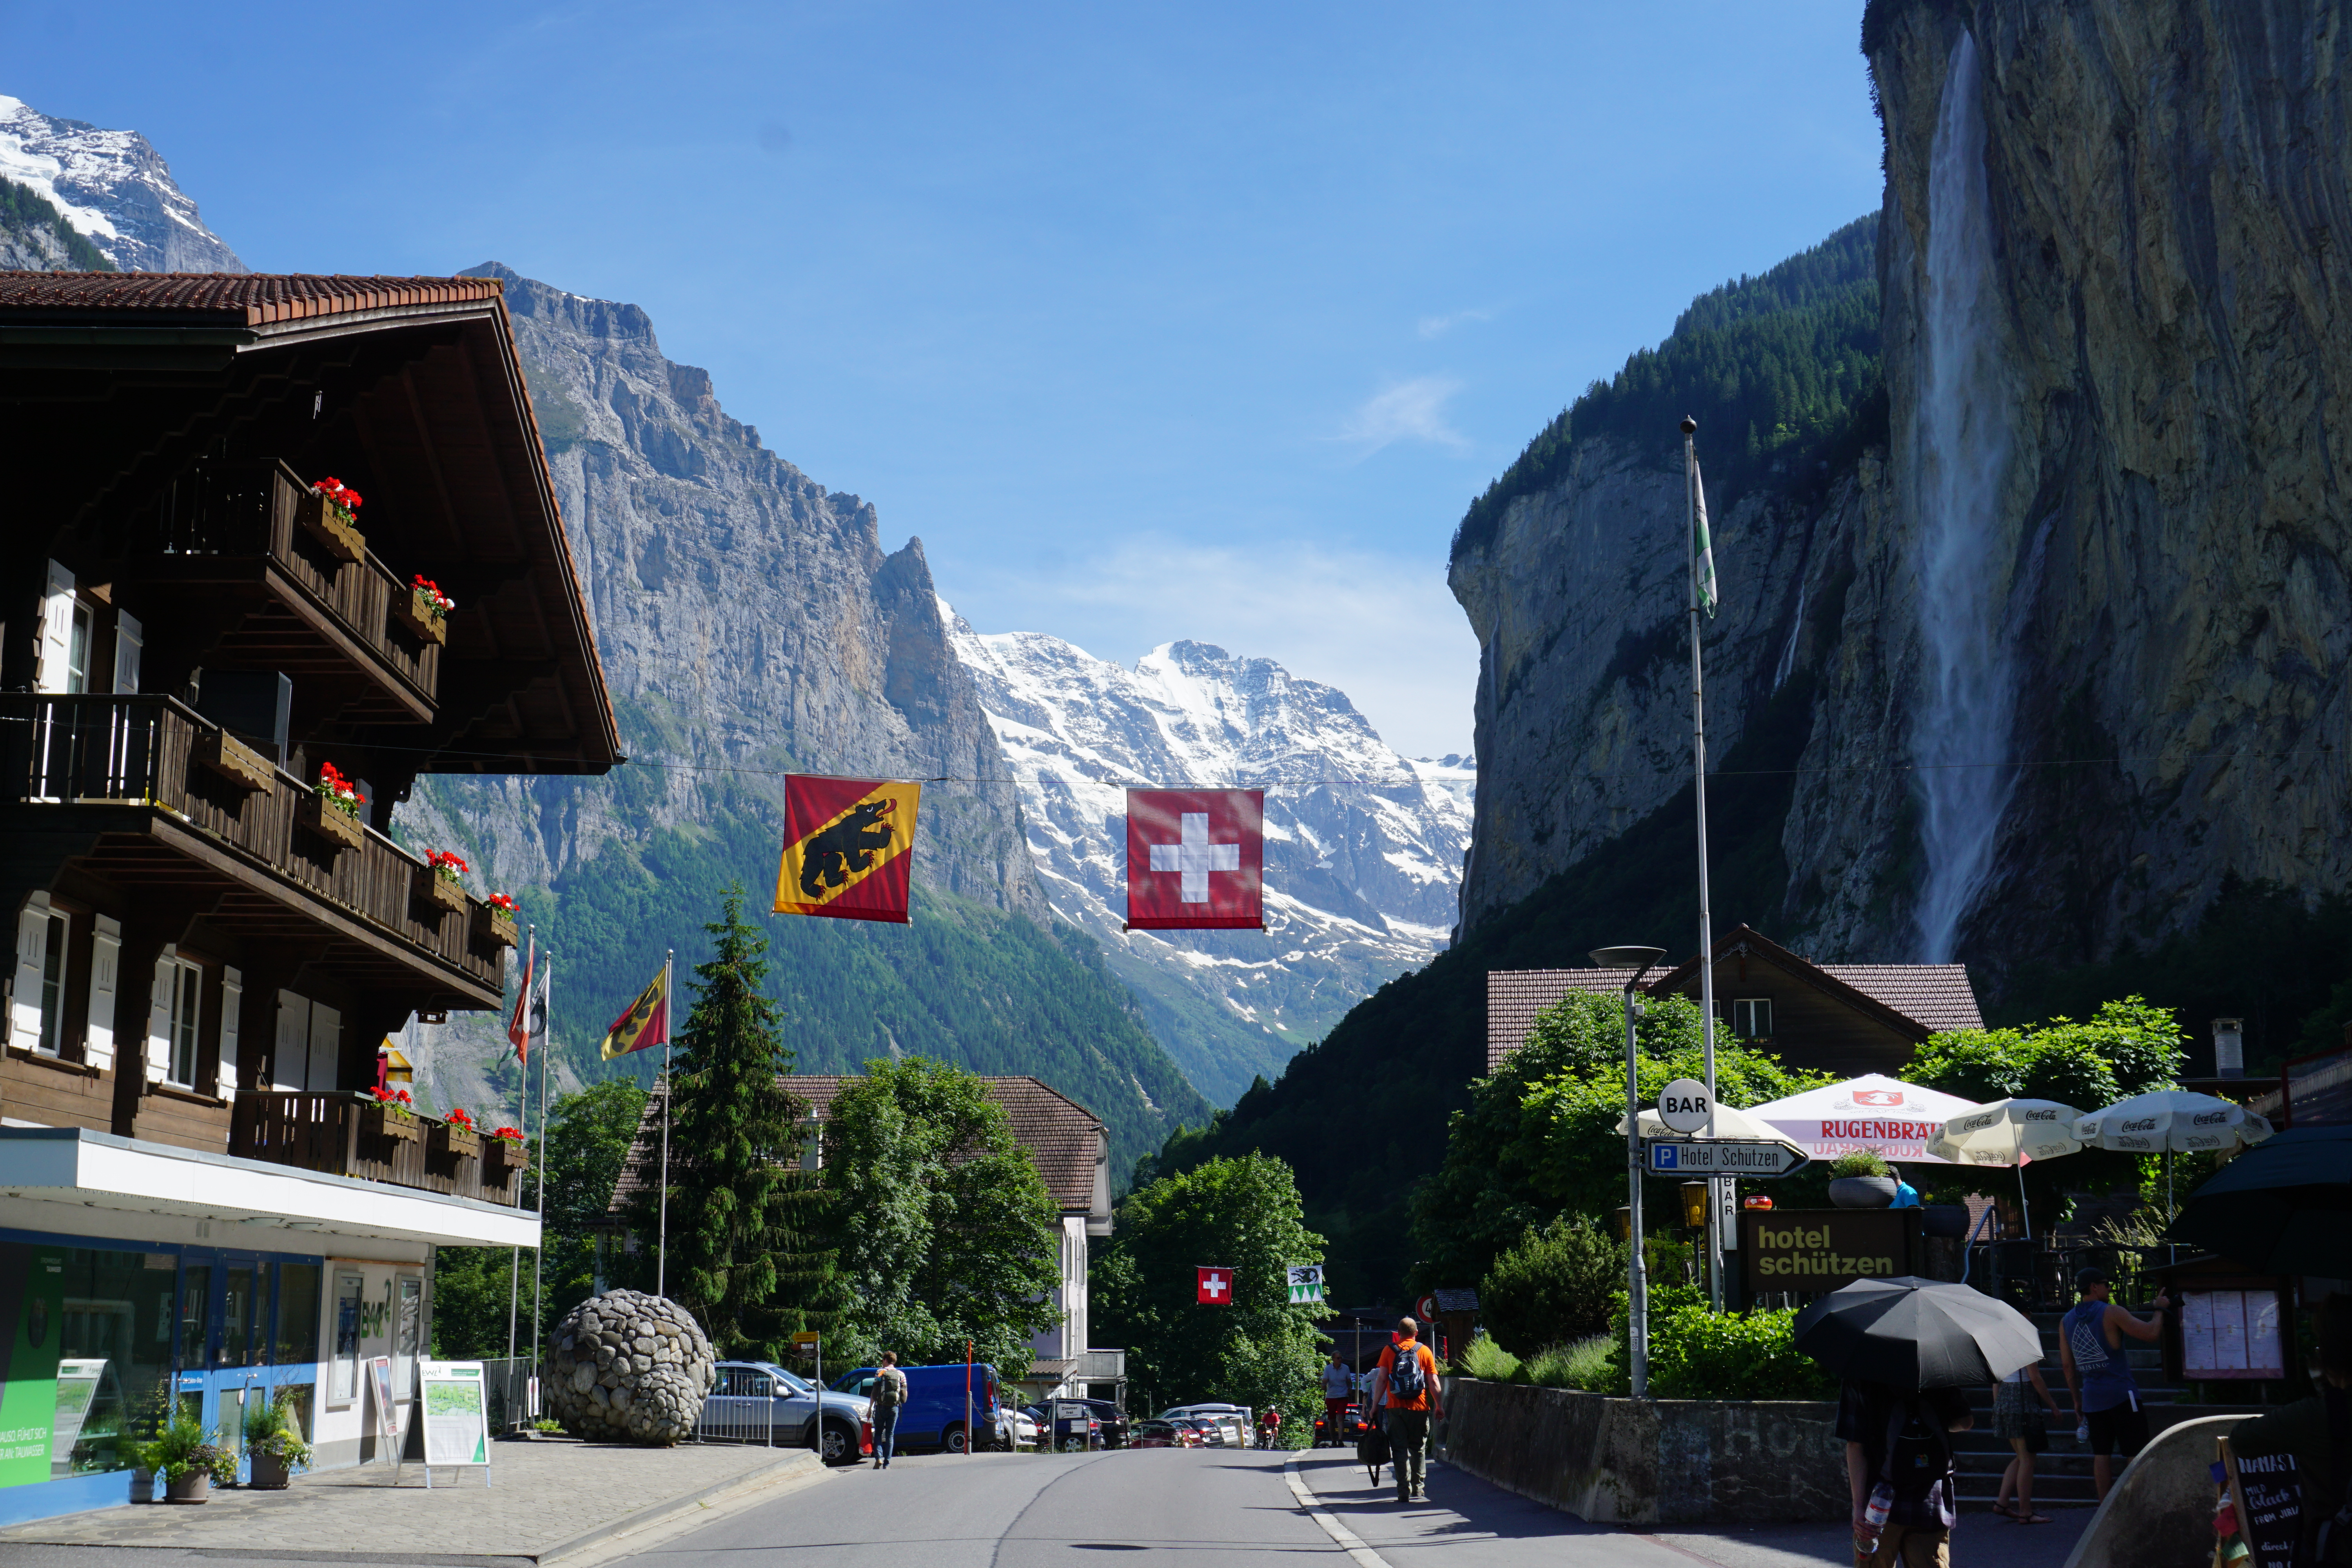 Our Favorite Things To See, Do and Eat in Lauterbrunnen, Switzerland - Trail Advocacy